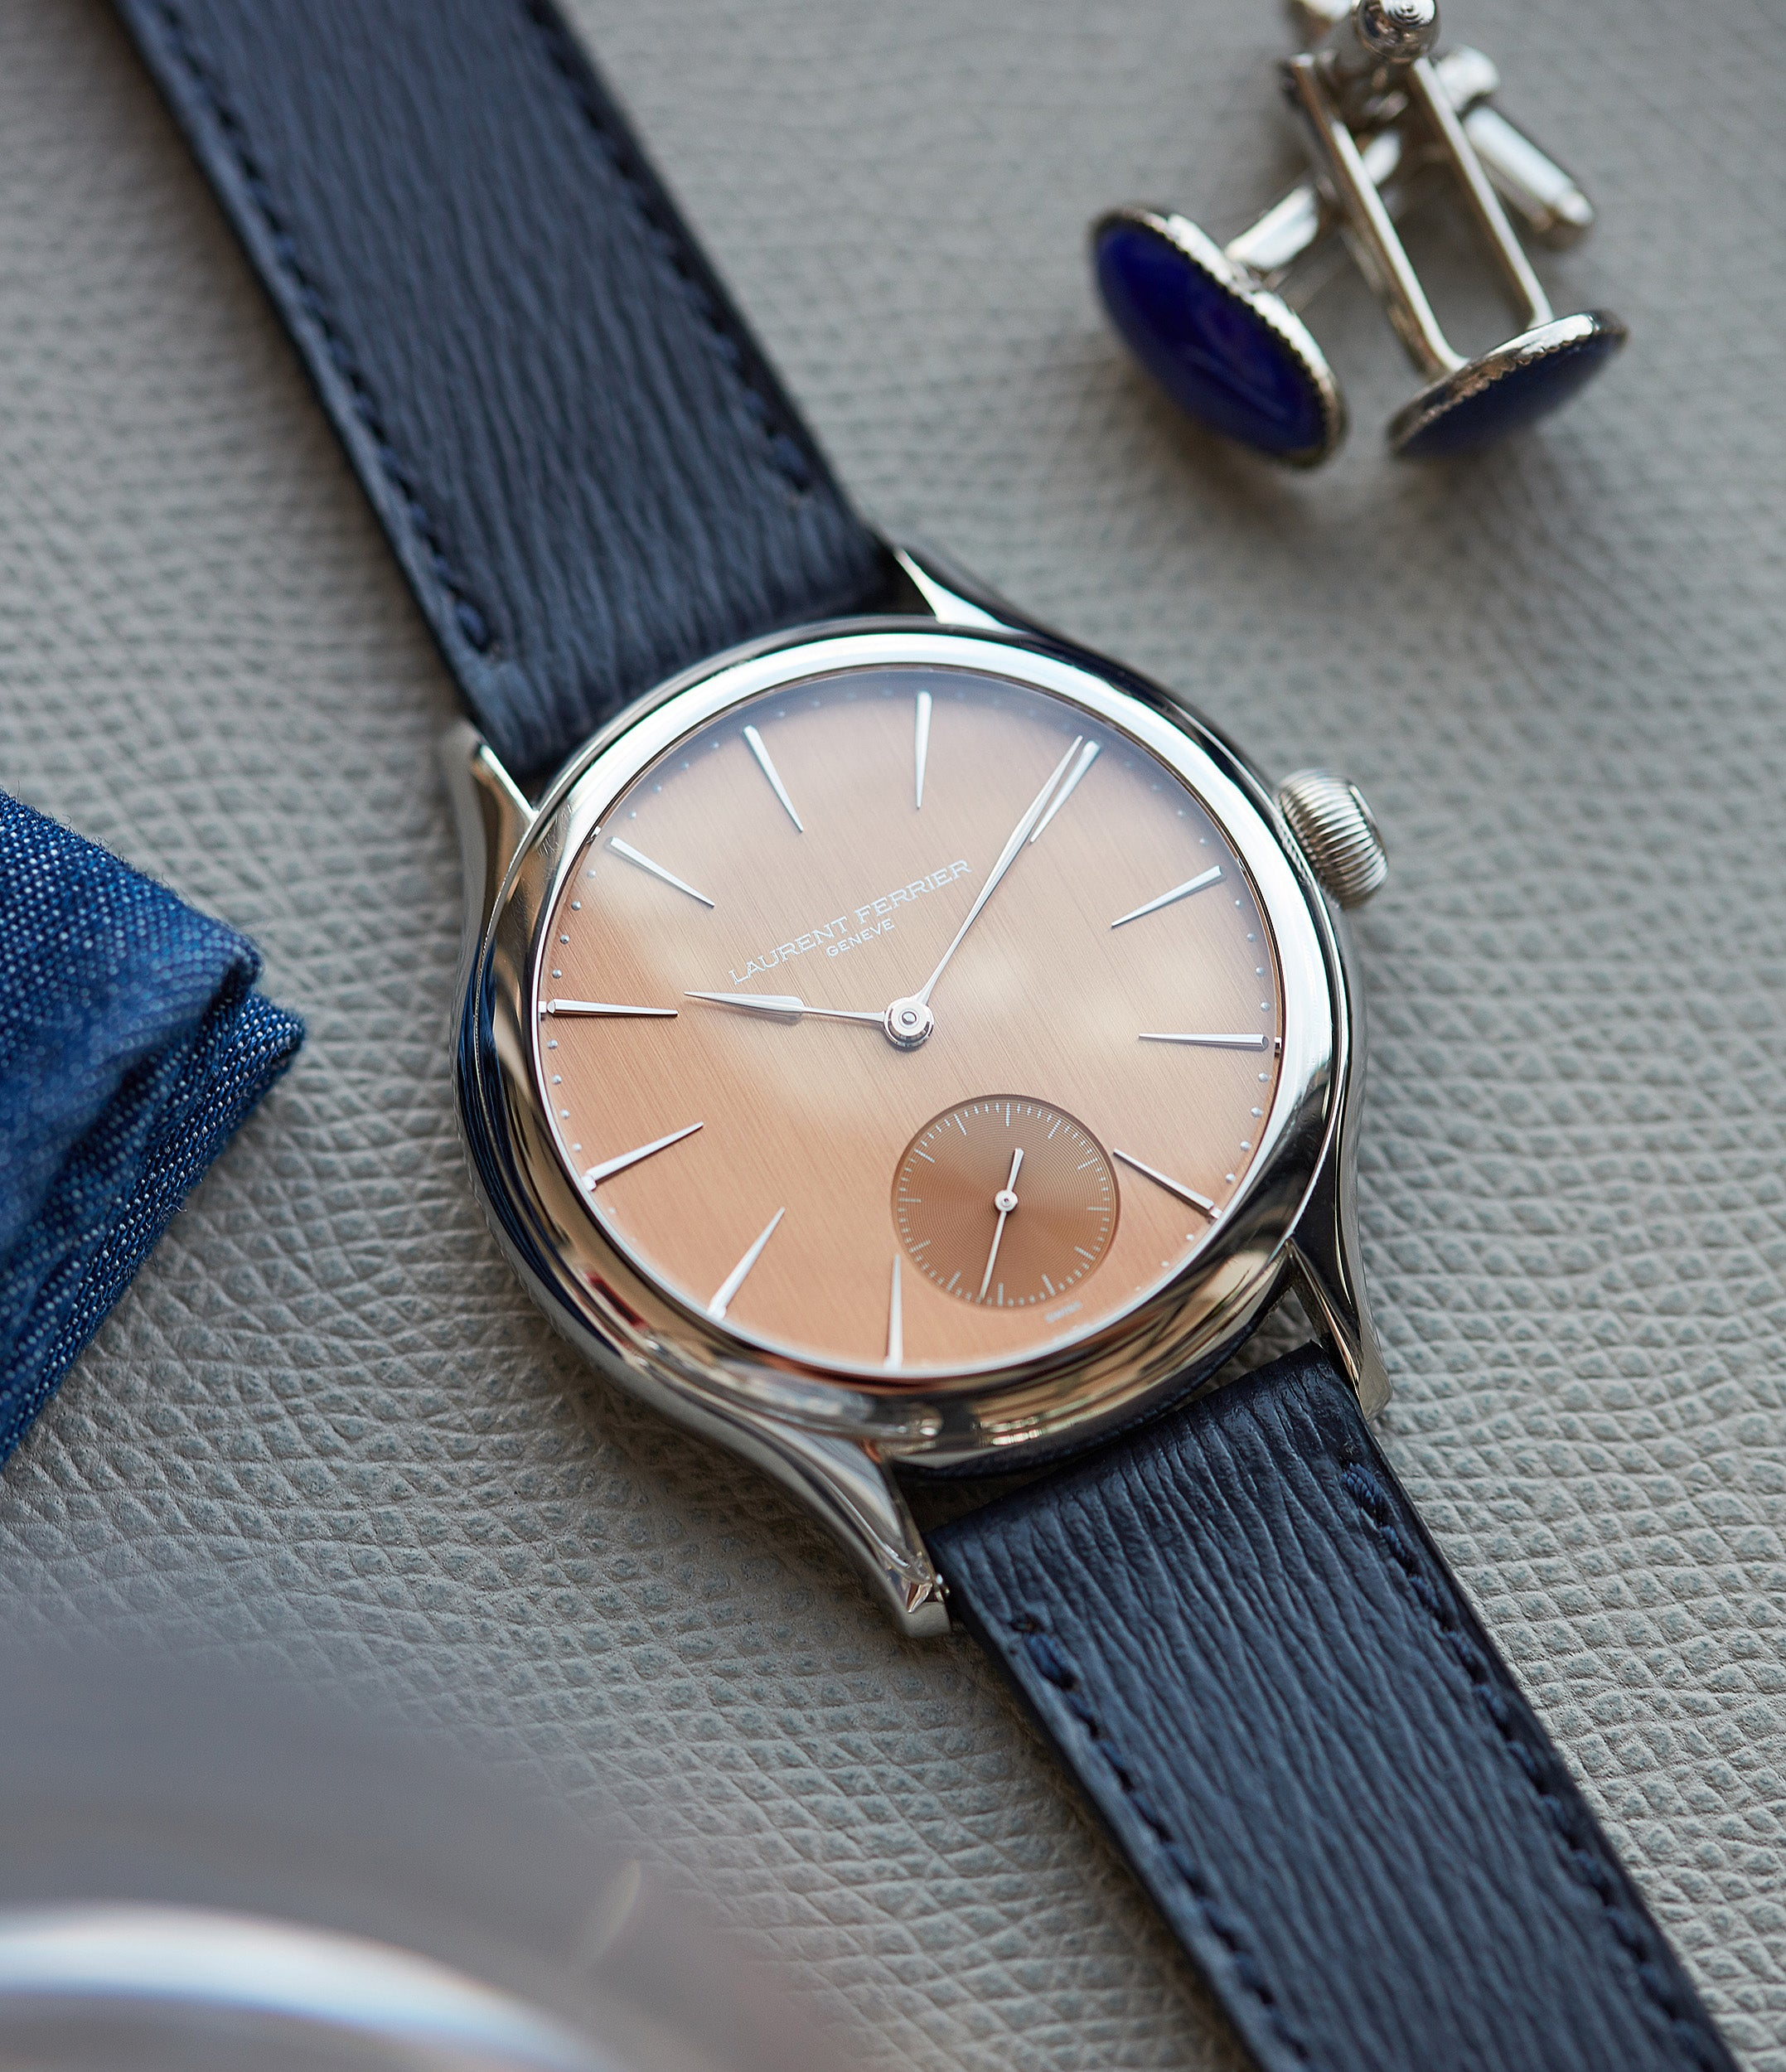 pink dial Laurent Ferrier Galet Micro-rotor FBN 229.01 steel rare watch for sale online at A Collected Man London approved re-seller of independent watchmakers